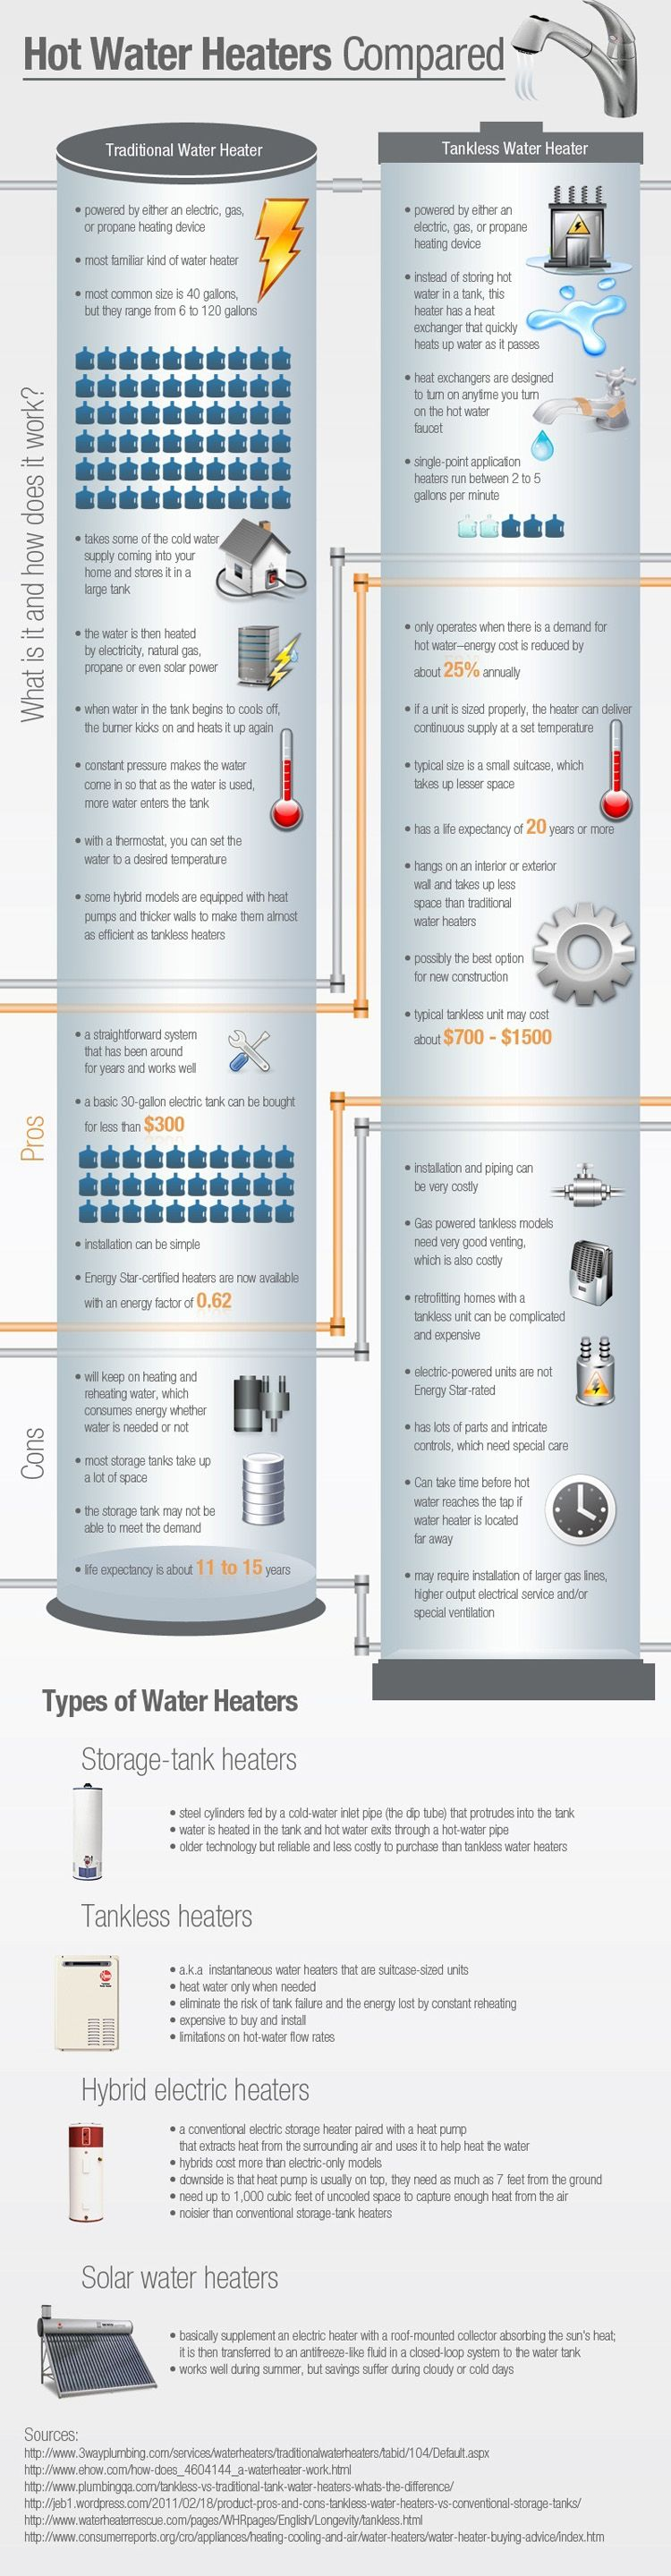 Water Heaters Comparison Infographic: Tankless Water Heaters Vs.  Conventional Water Heaters